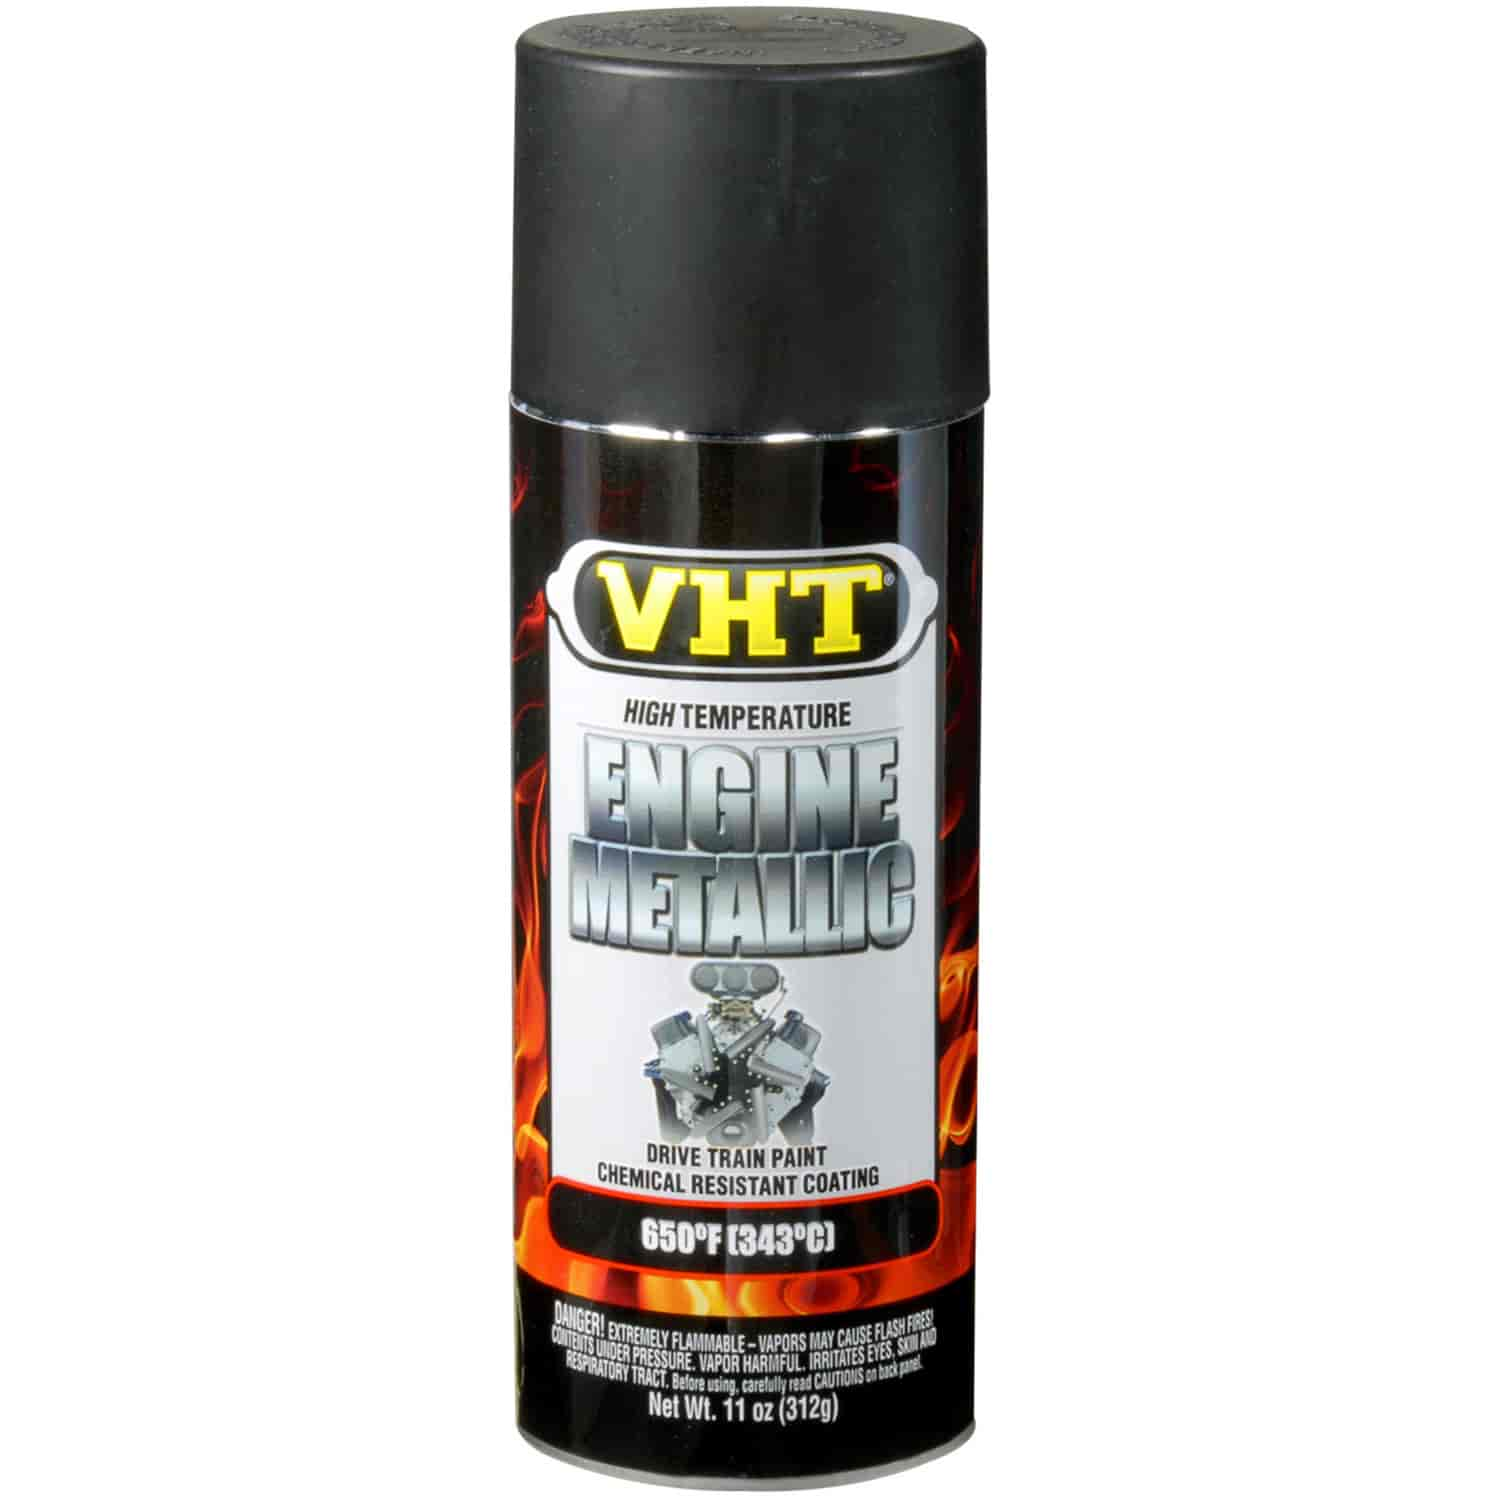 VHT SP405 - VHT Engine Metallic Paint